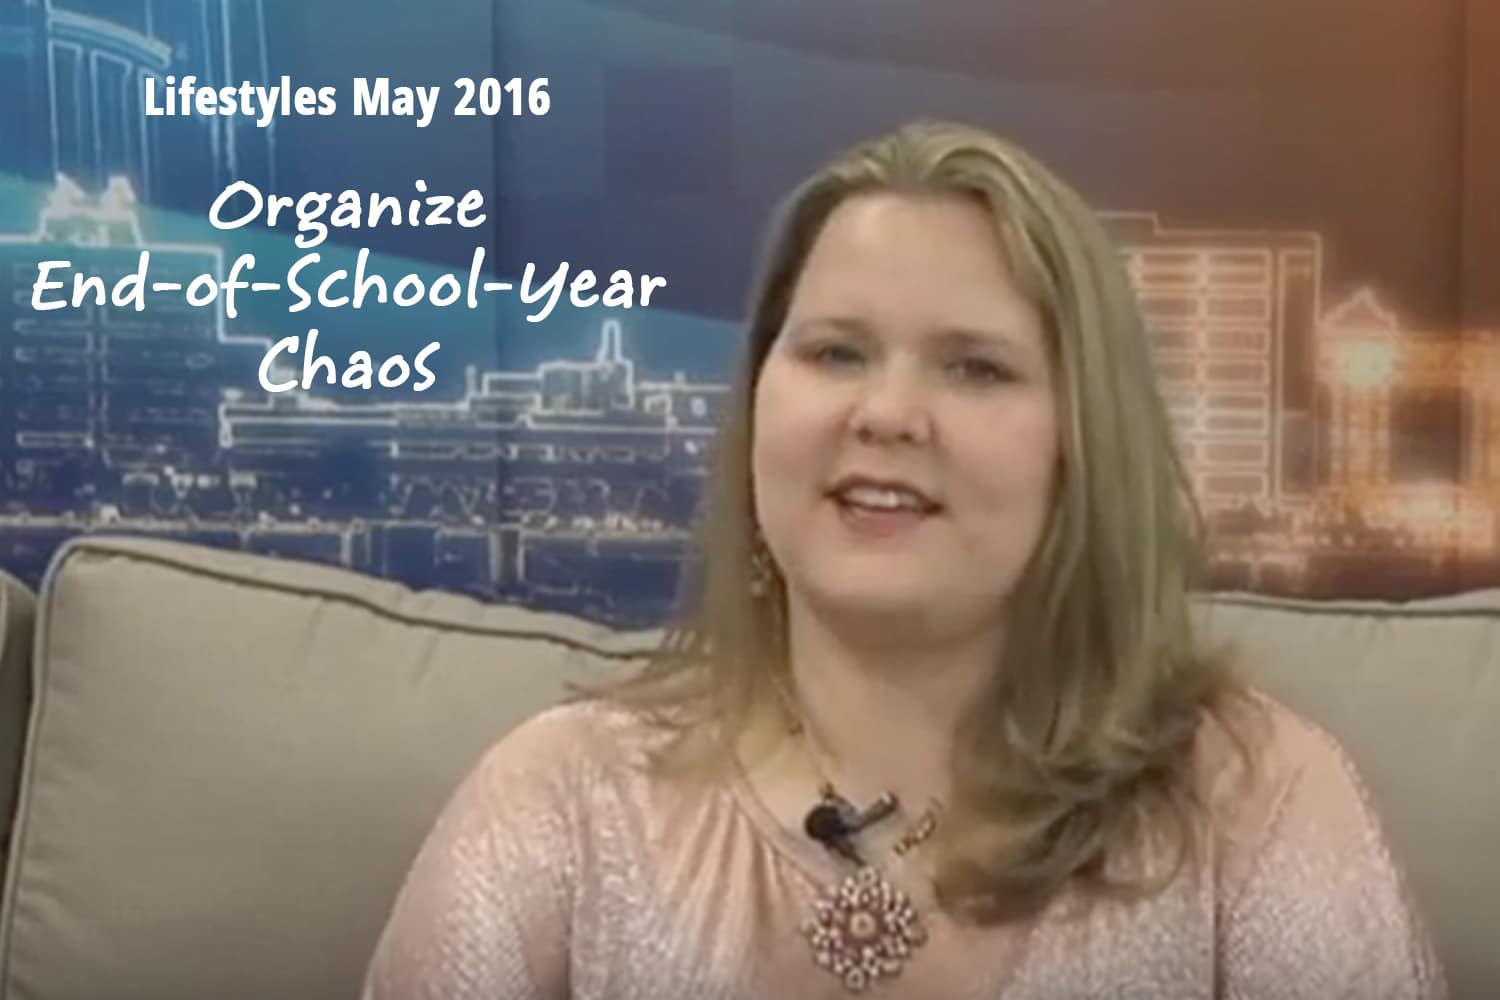 Lifestyles May 2016: Organize End-of-School-Year Chaos